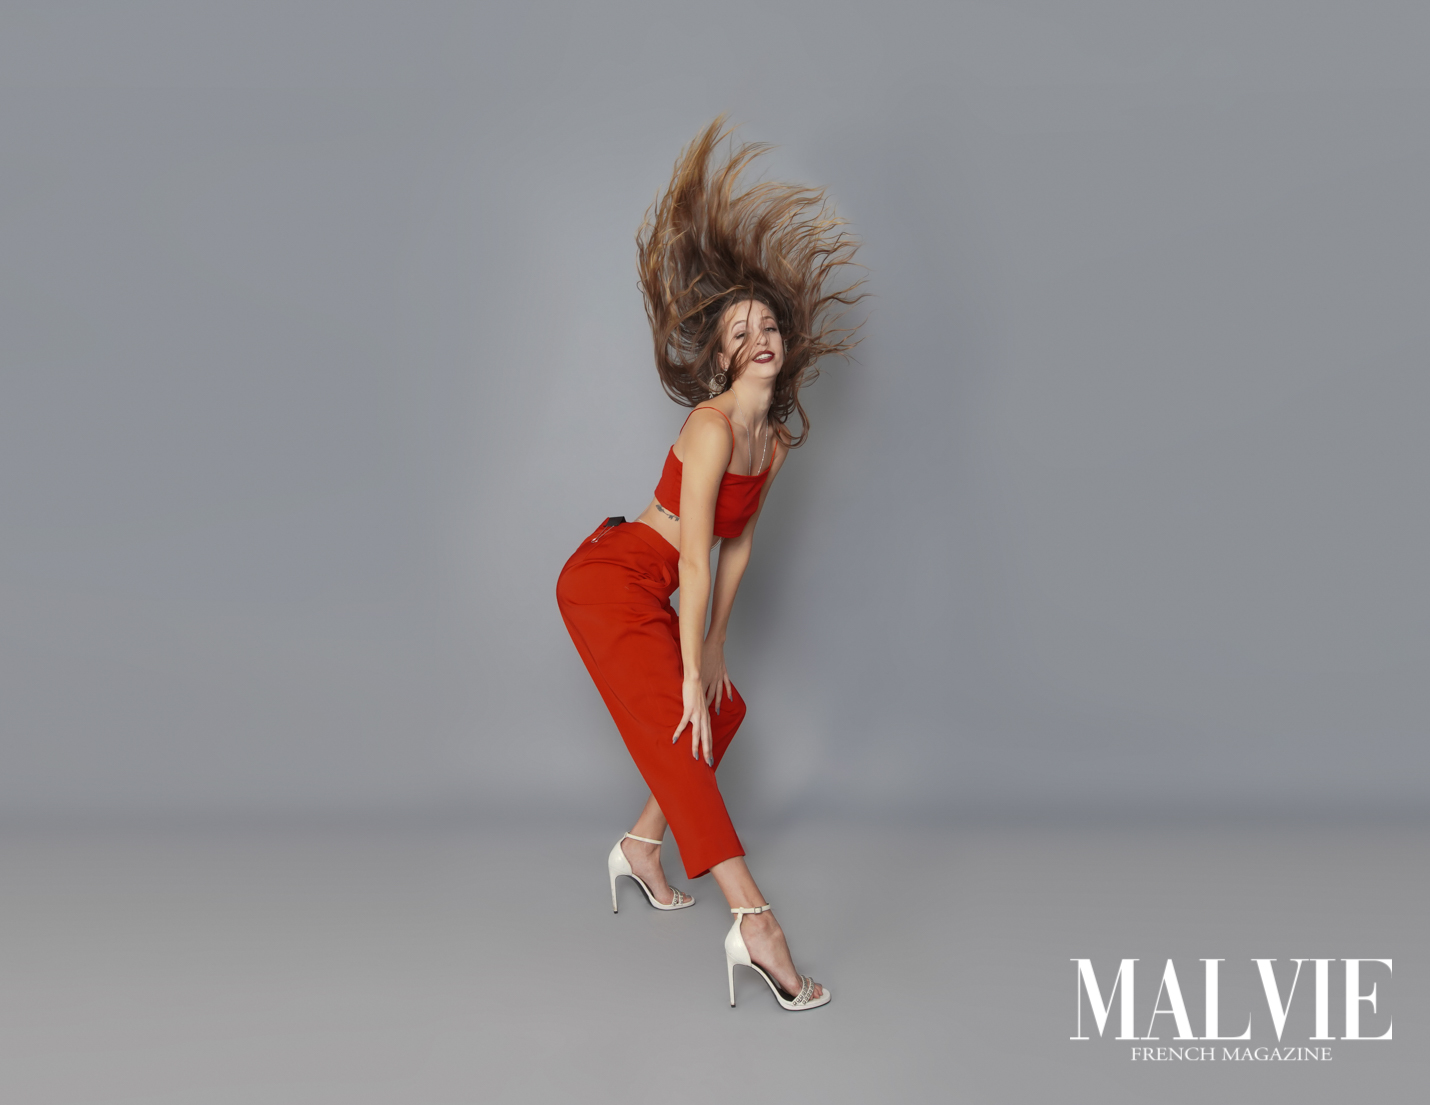 Creative Edgy High Fashion! MALVIE French Magazine